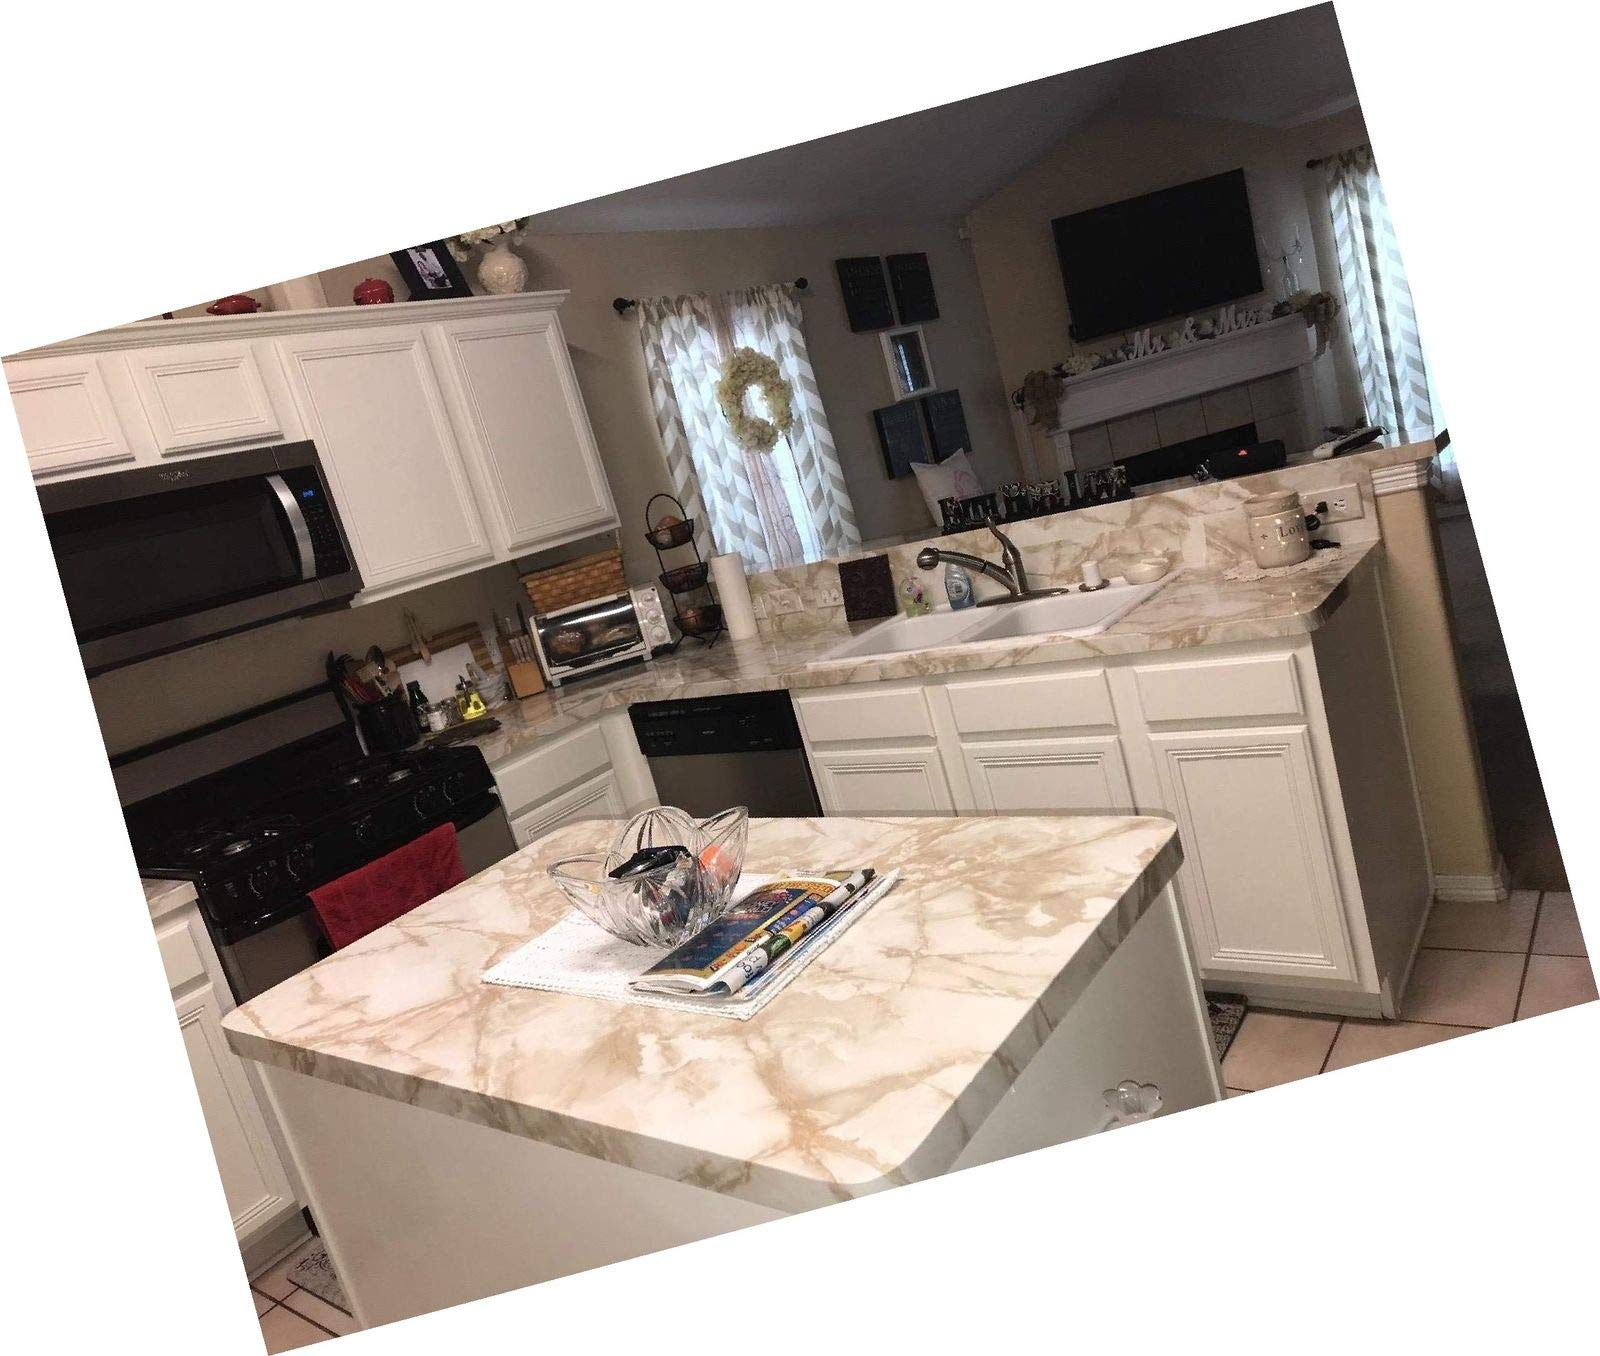 EZ FAUX DECOR 36'' W x 240'' L Decorative Peel and Stick White Riviera Creme Brulee Faux Marble Self Adhesive Counter Top Vinyl Film Update NOT Grandma's Contact Paper by EZ FAUX DECOR (Image #9)